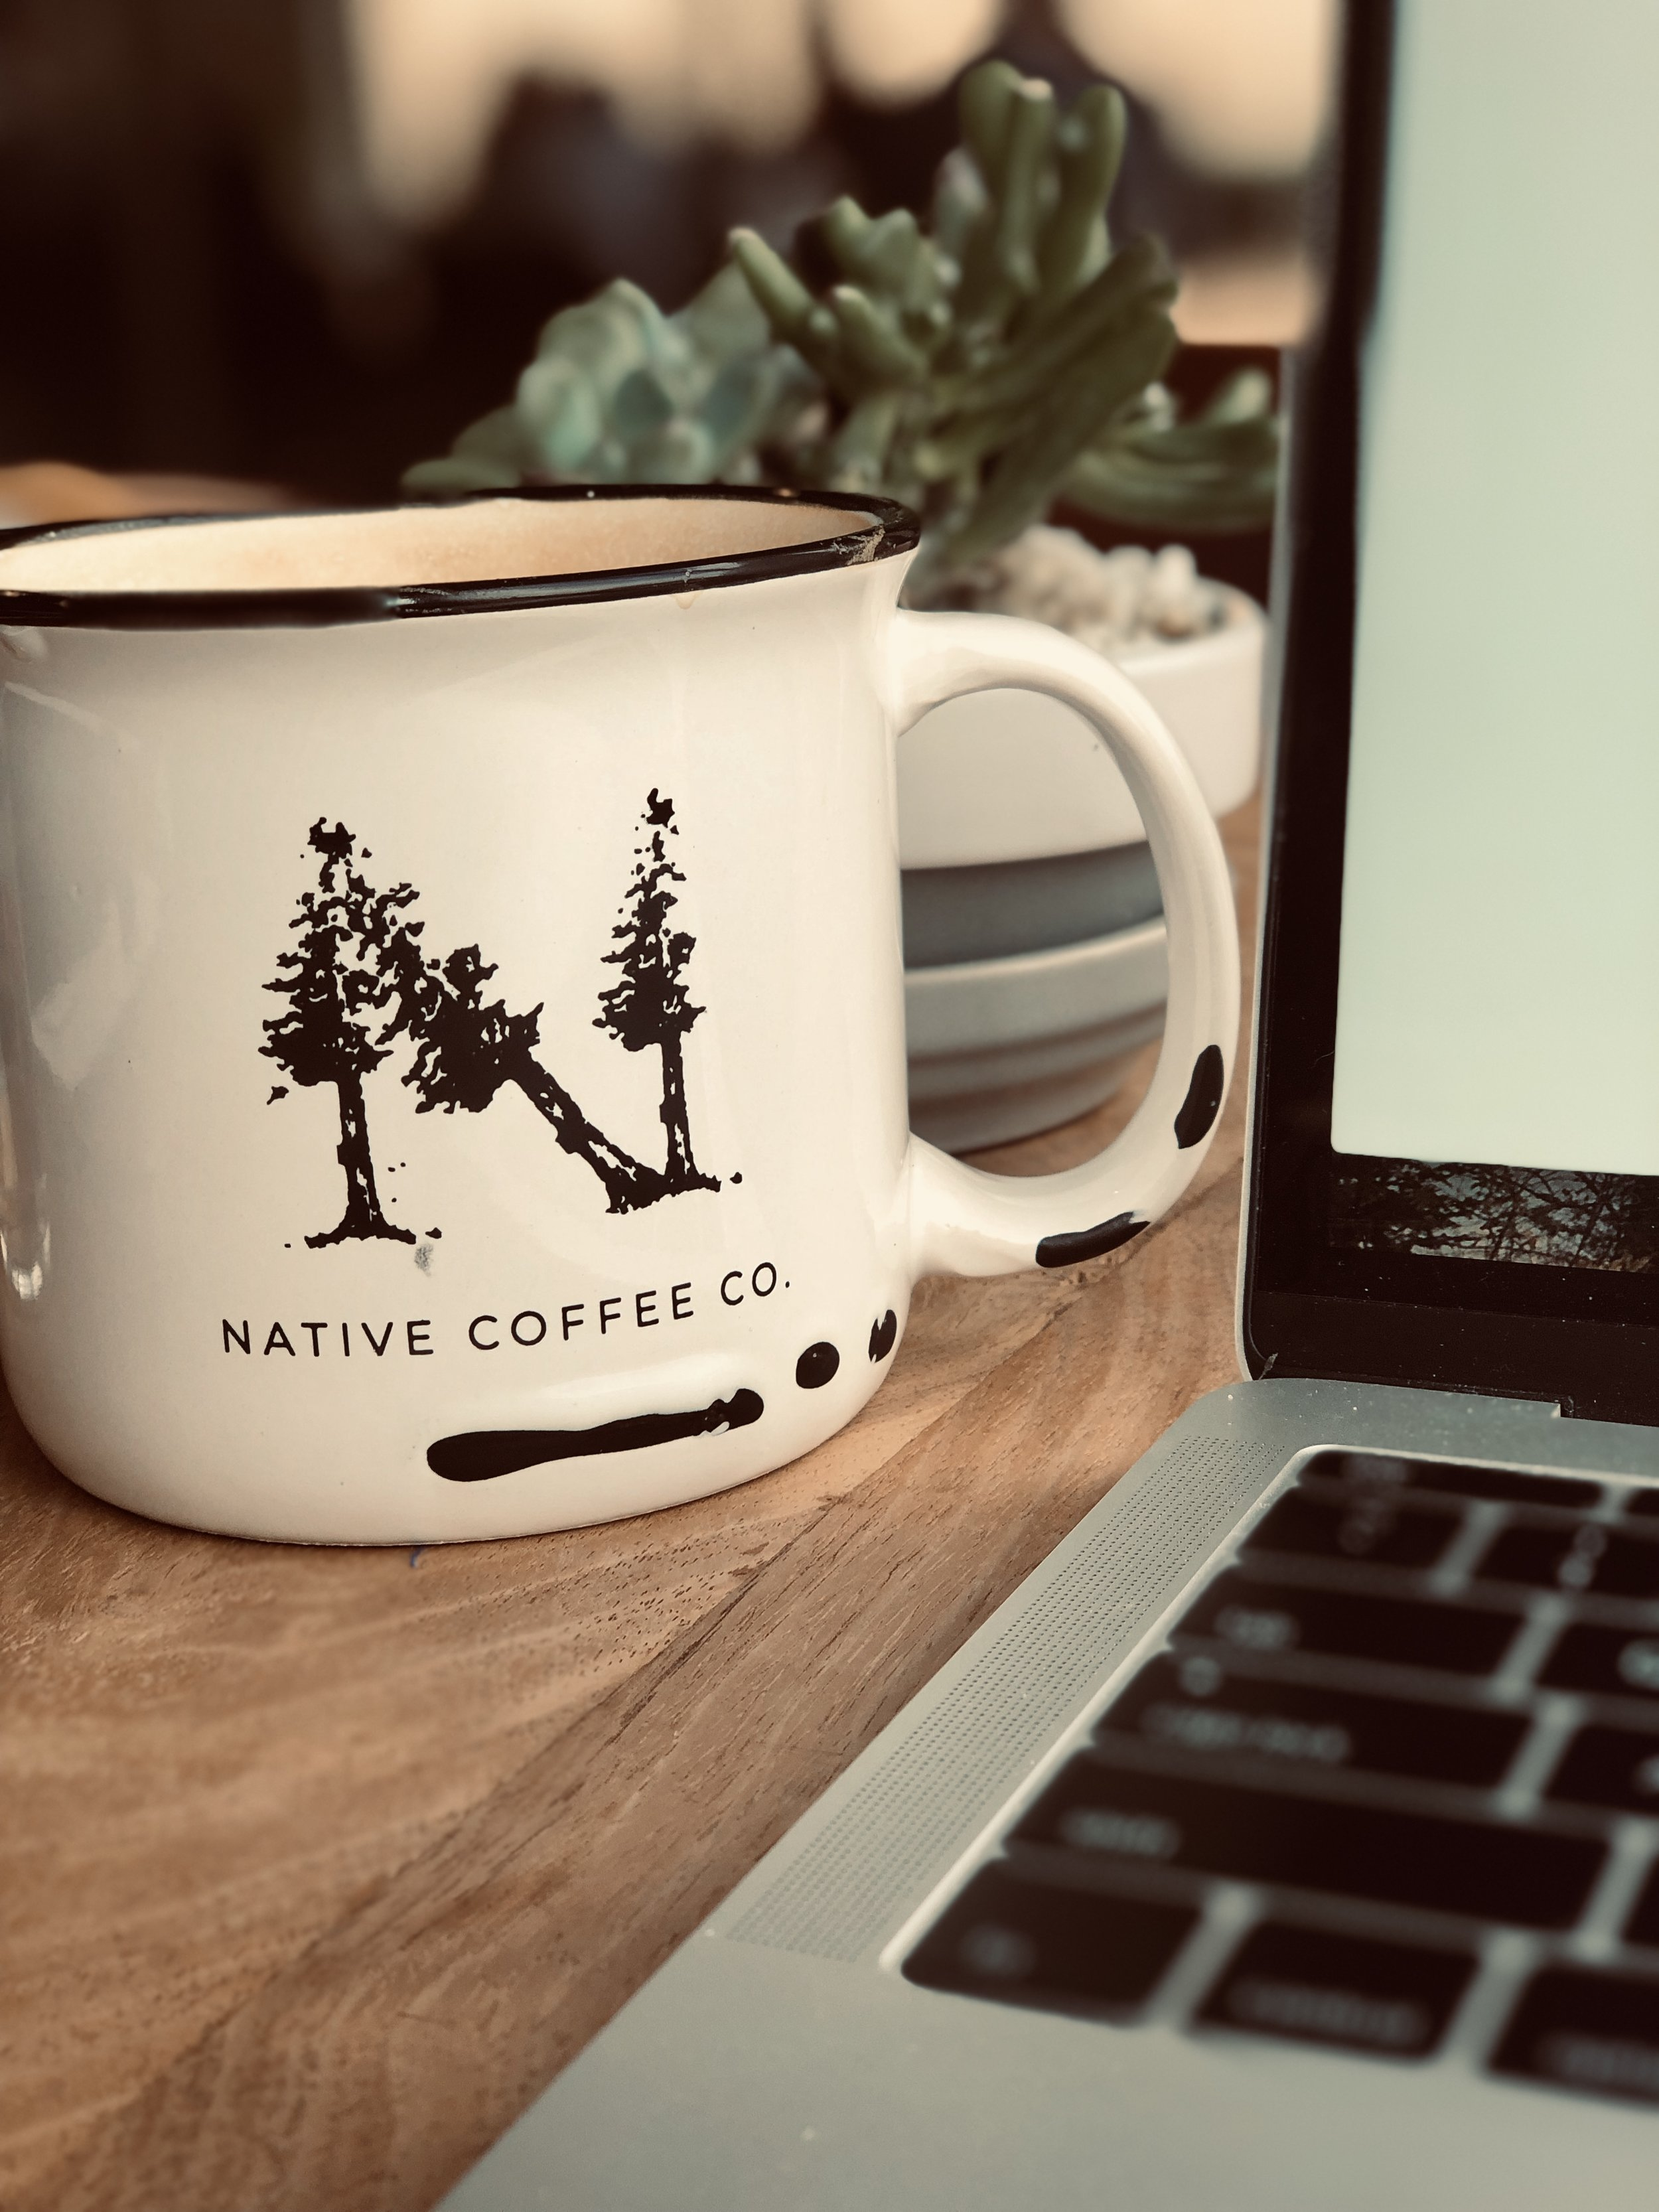 Before writing group last night I spent time at a new-is coffee shop in North Dallas (Addison) called  Native Coffee Co . Cozy, quiet, and delicious warm drinks! I'll definitely be back.